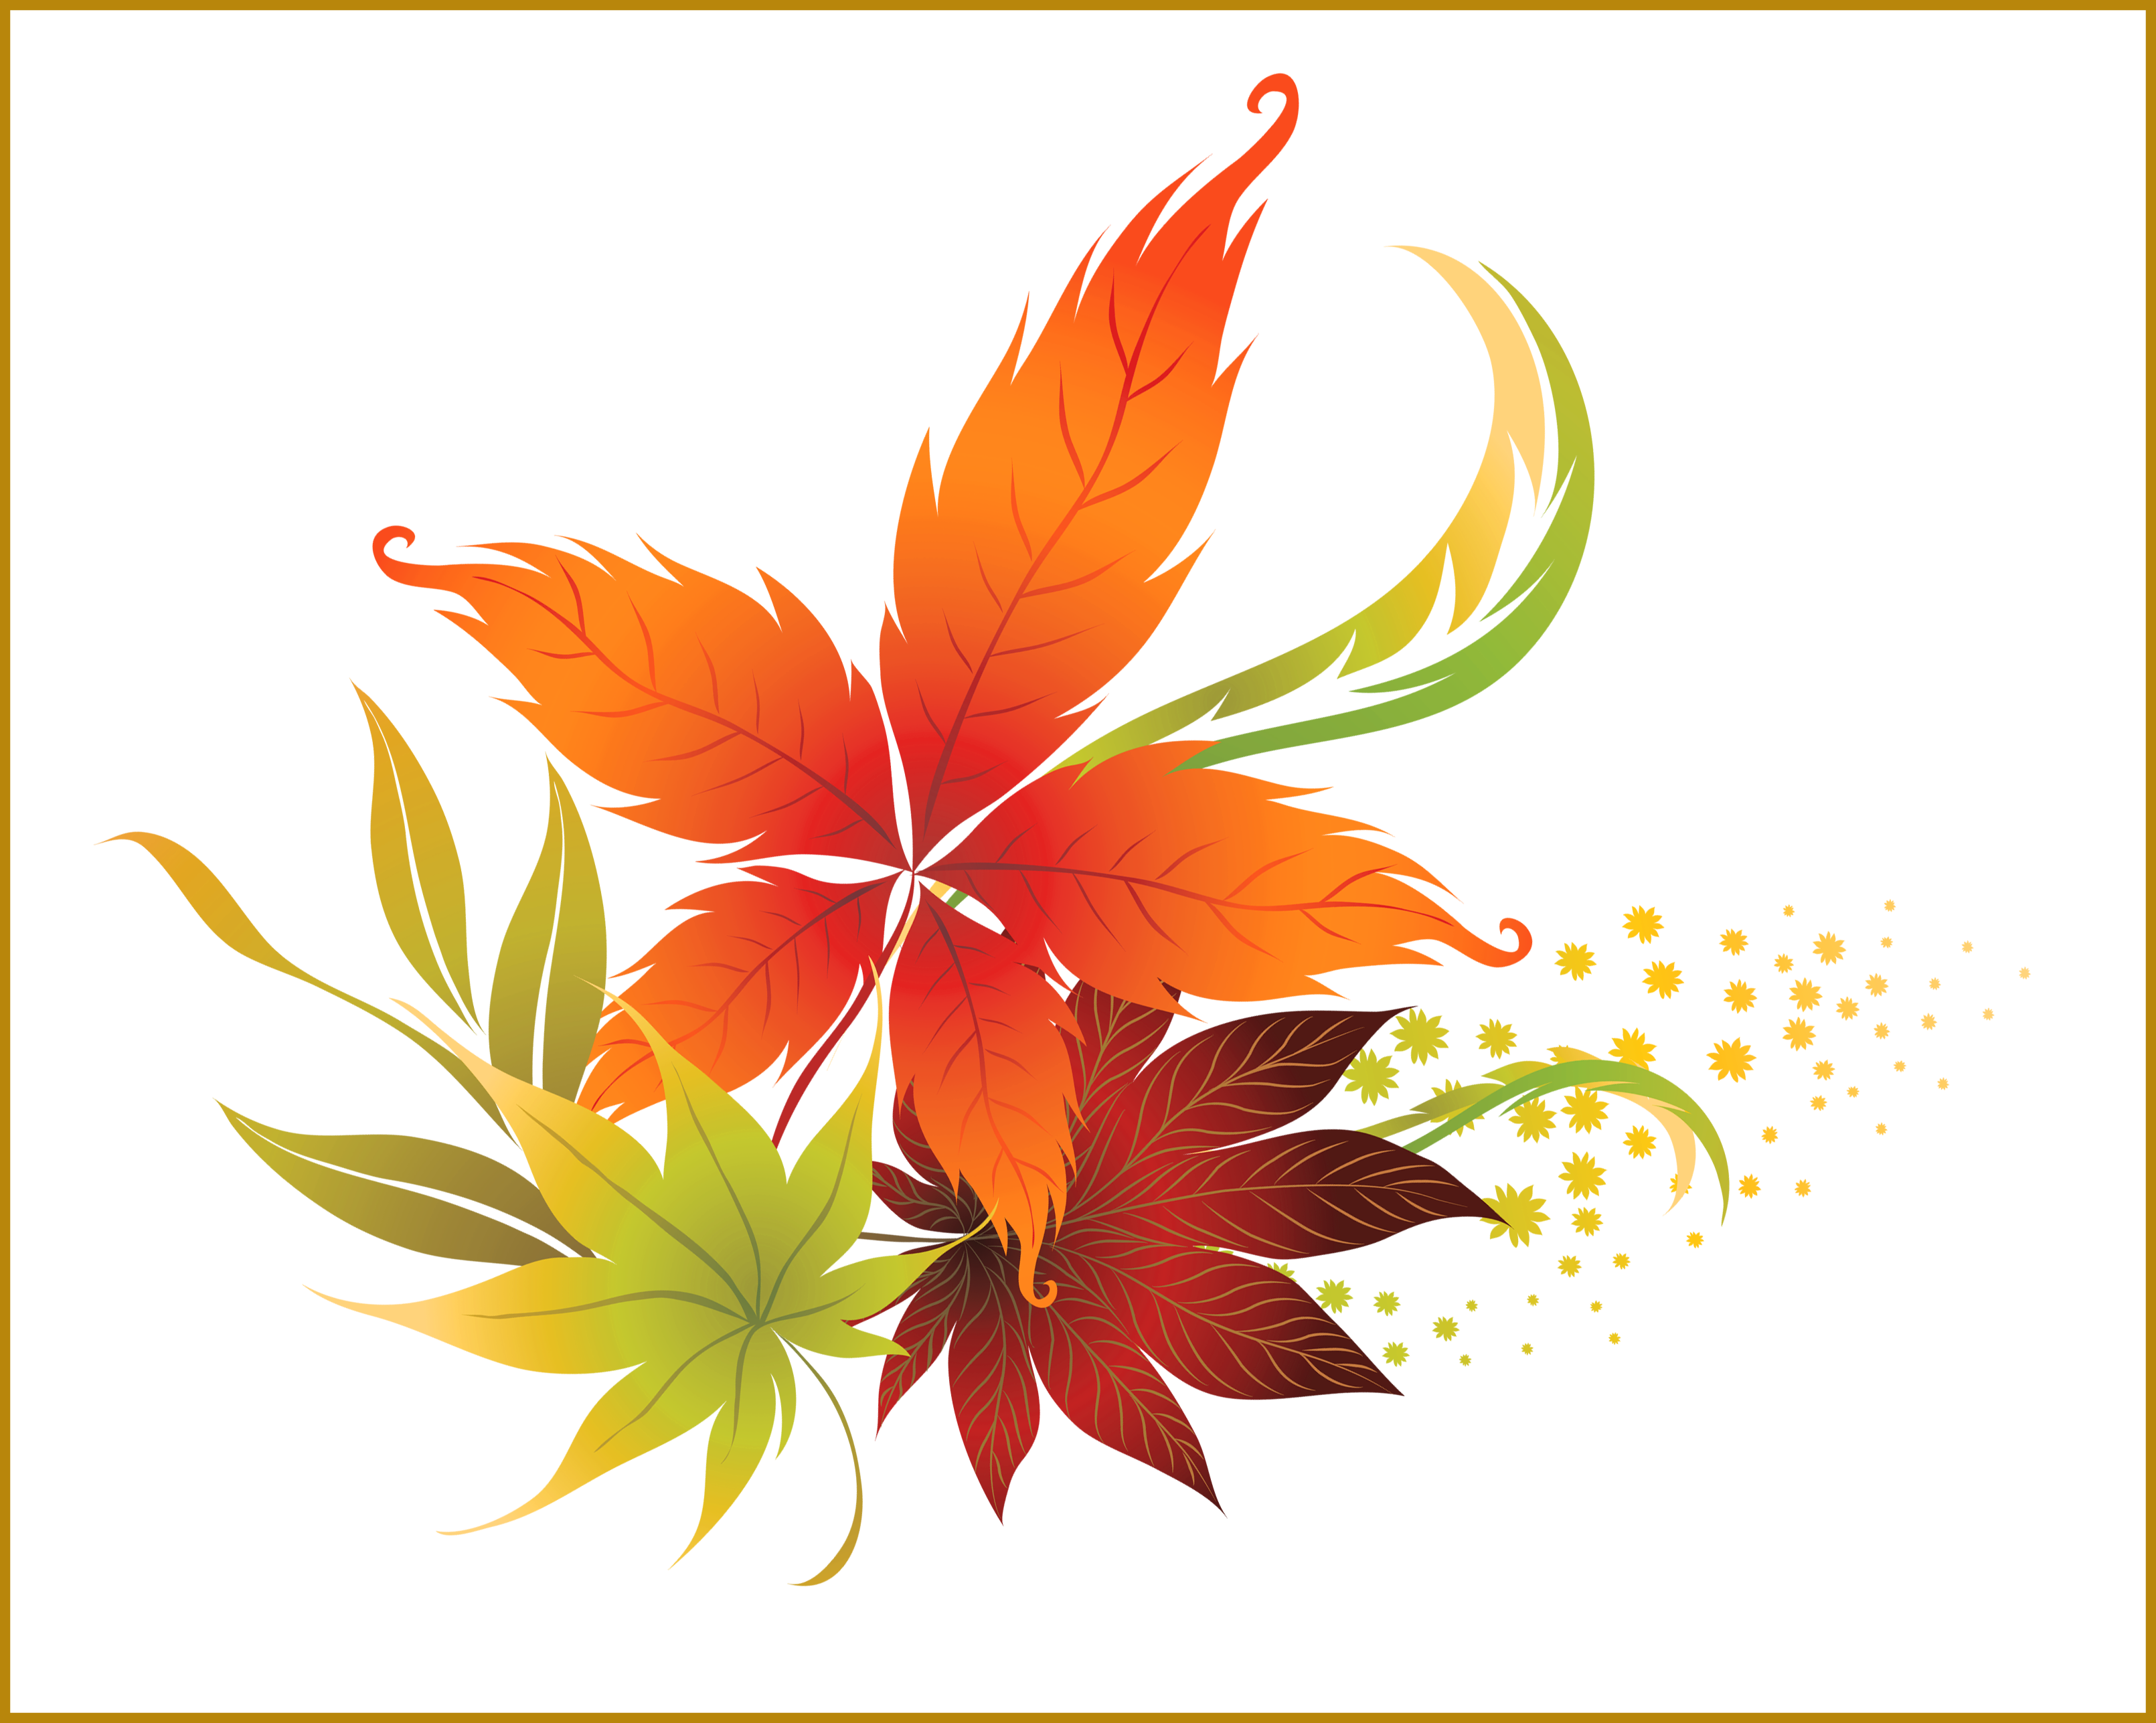 Leaves clipart sunflower. Awesome fall leaf no